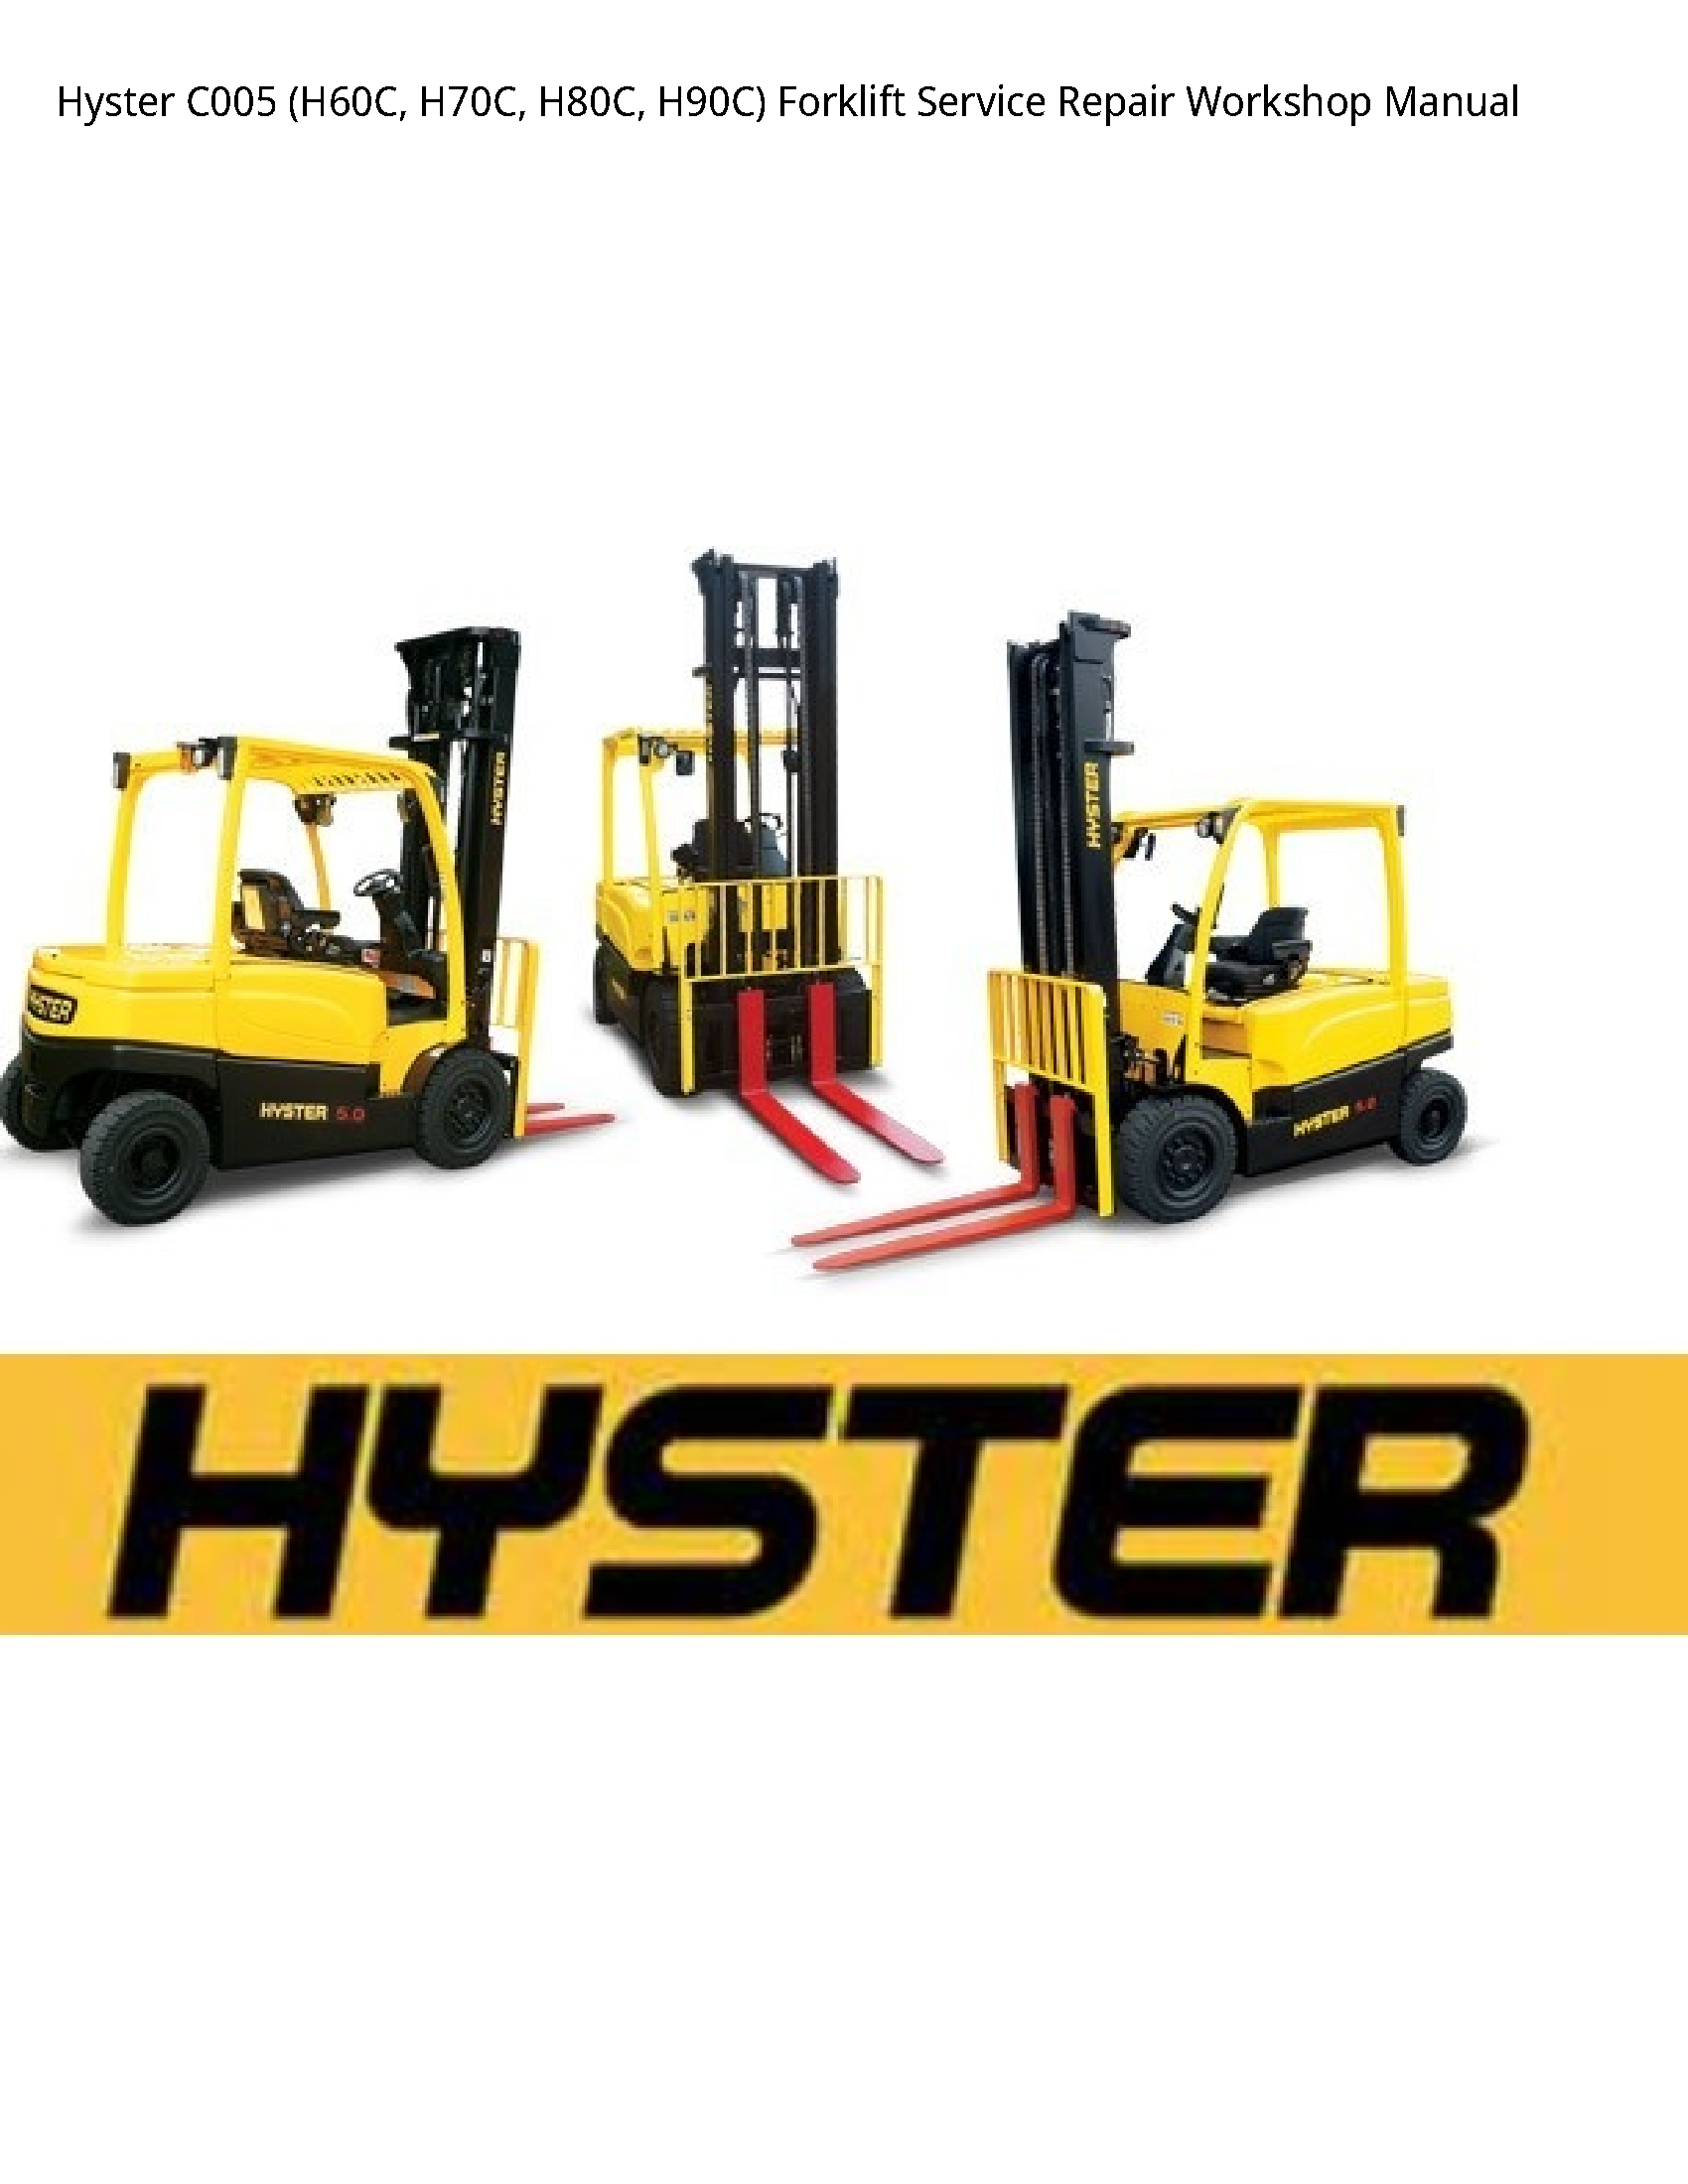 Hyster C005 Forklift manual